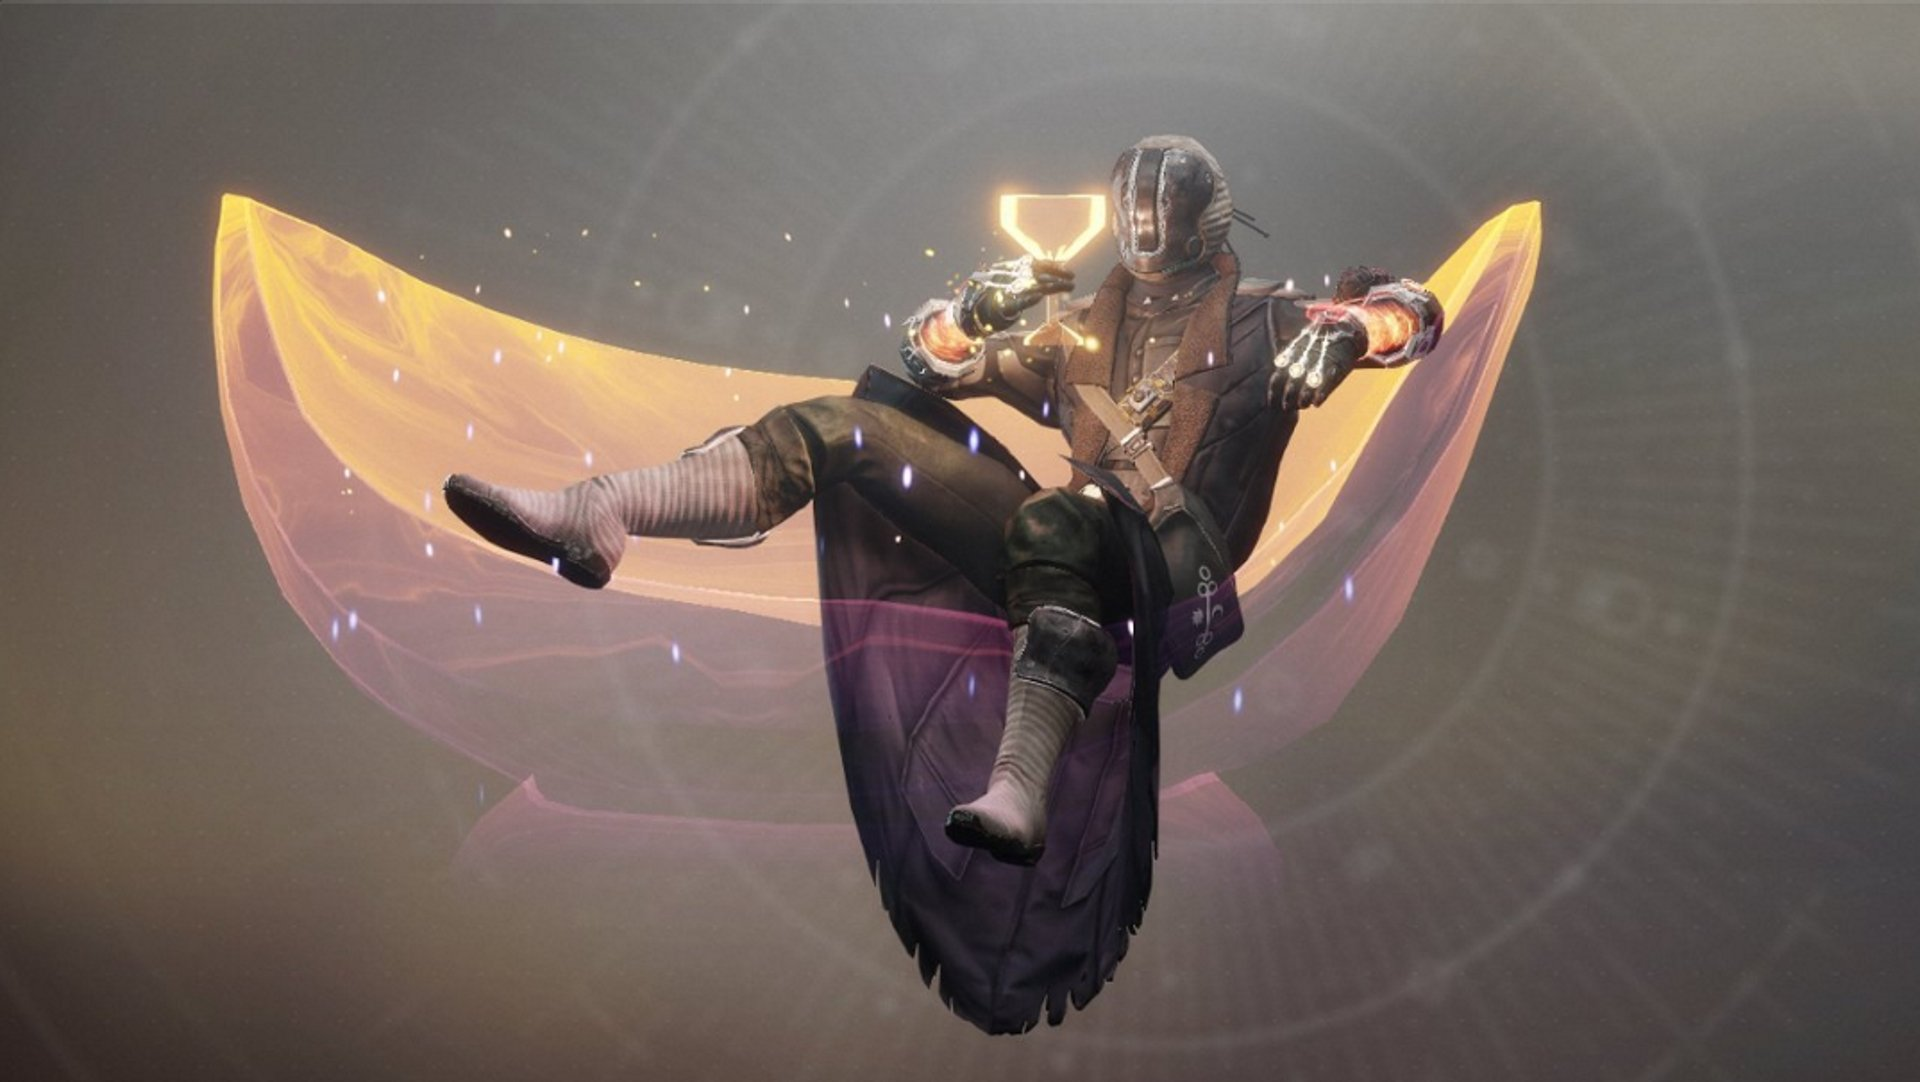 How to get the Luxurious Toast emote destiny 2